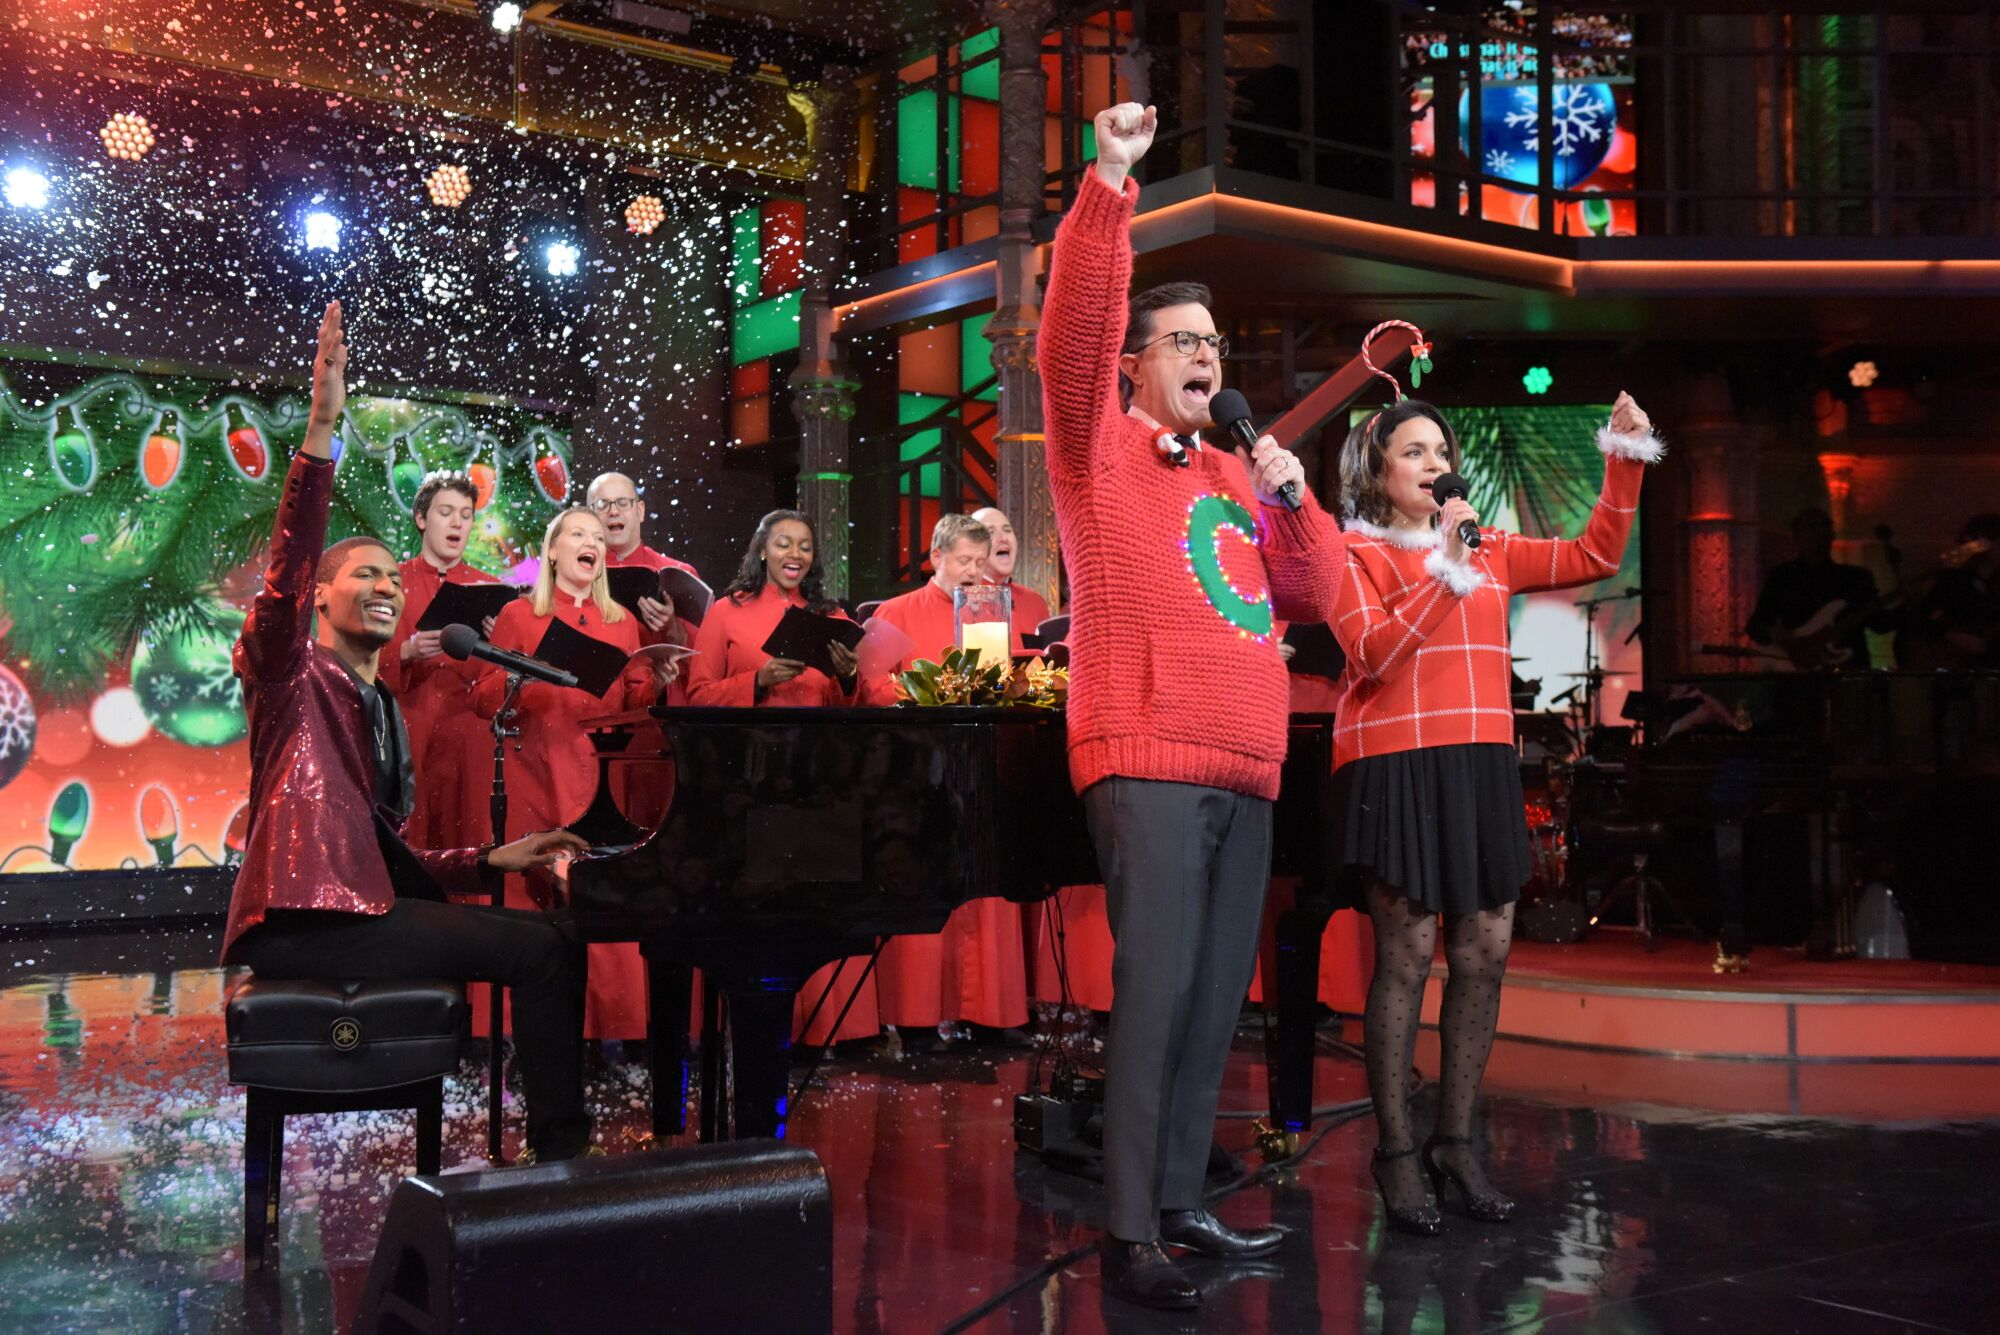 A Stephen Colbert Claymation Christmas Special on The Late Show